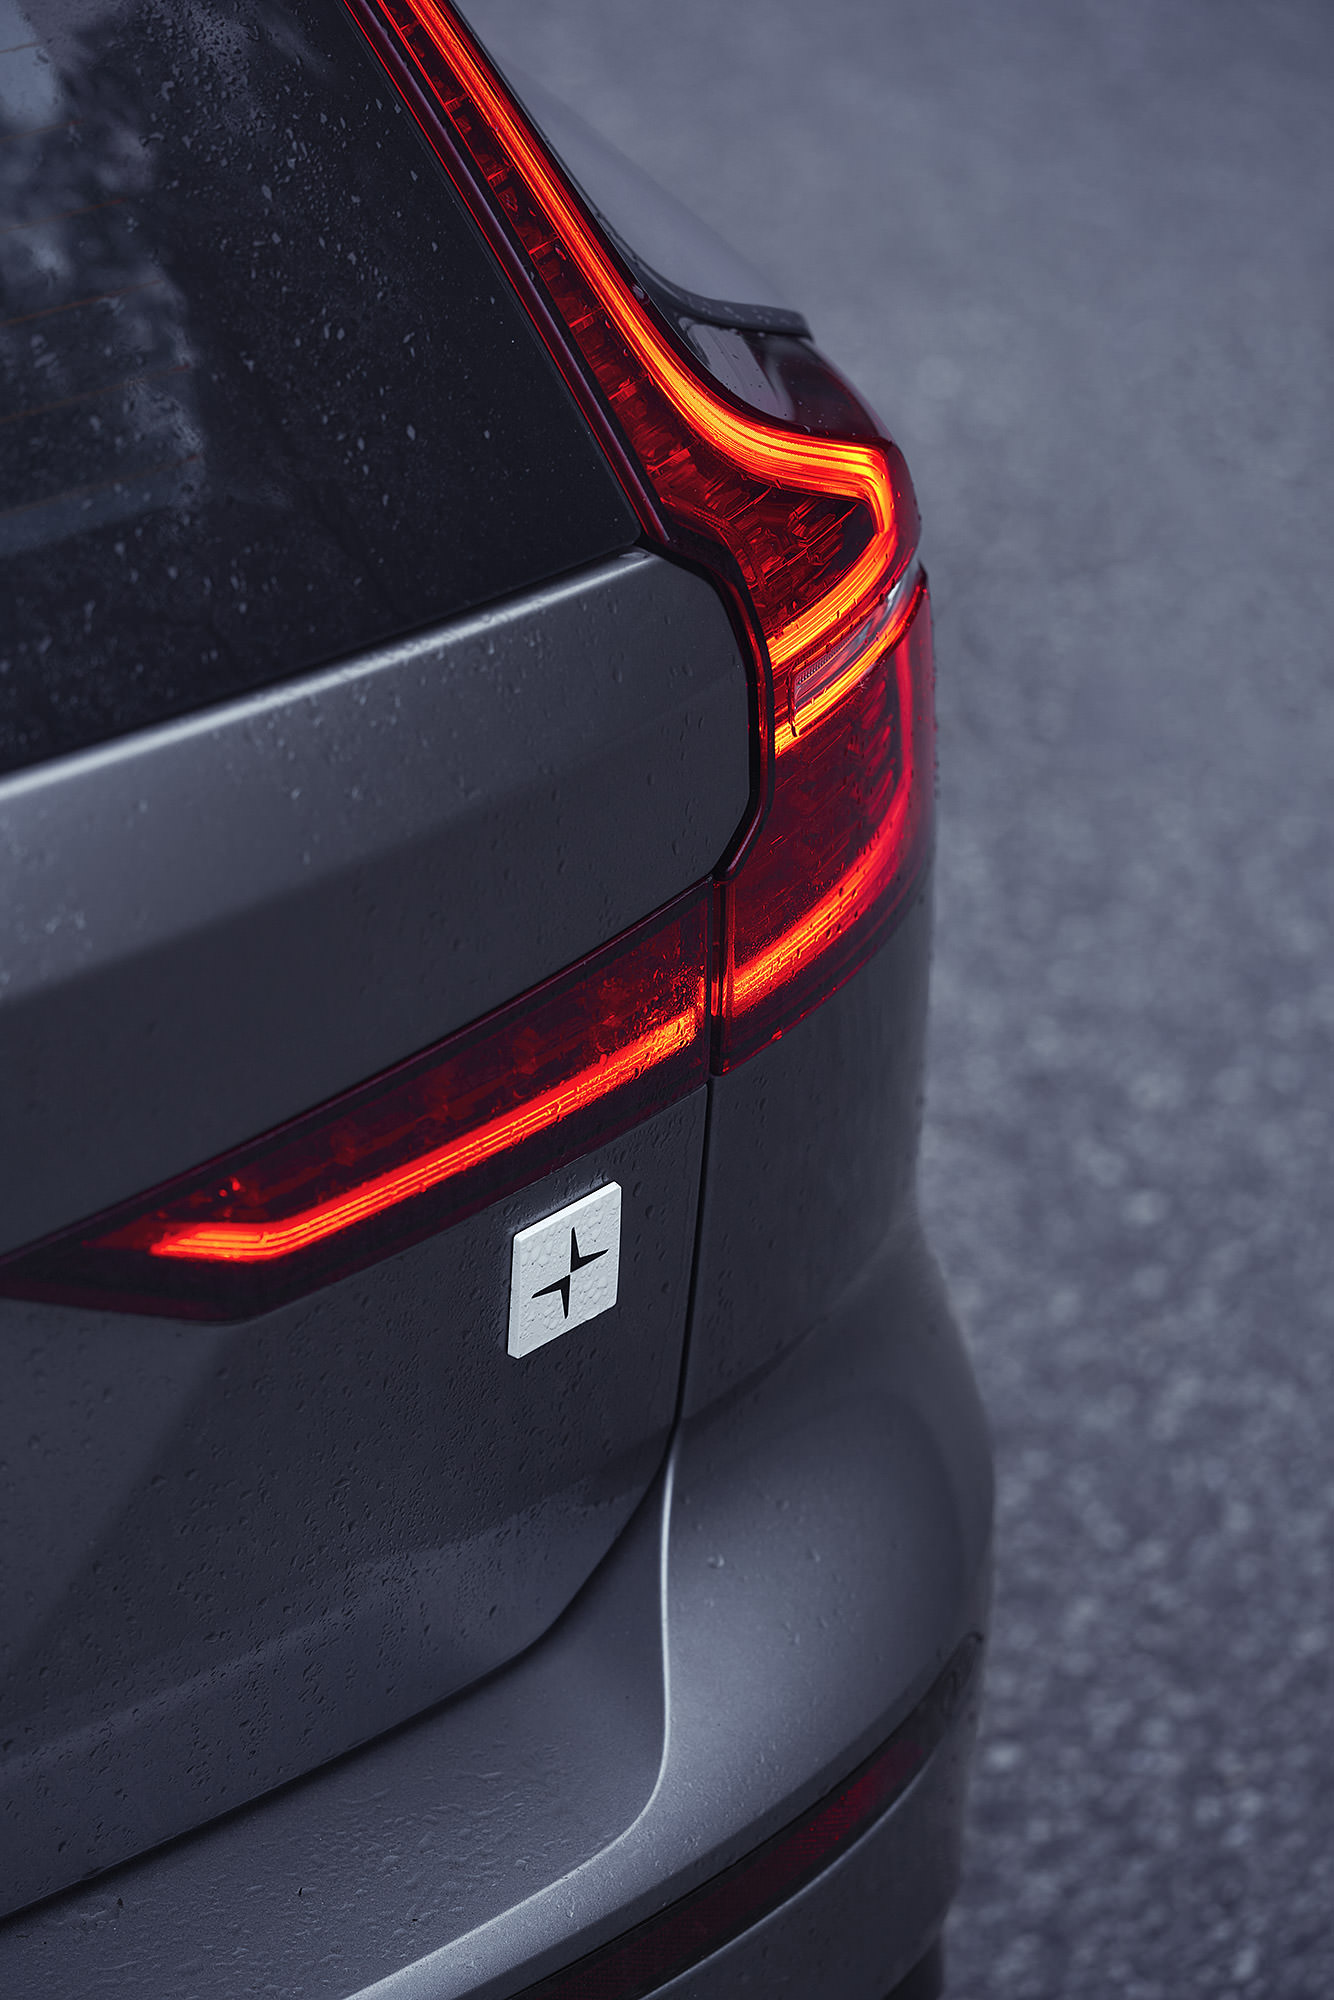 Volvo V60 T8 Polestar rear trunk badge